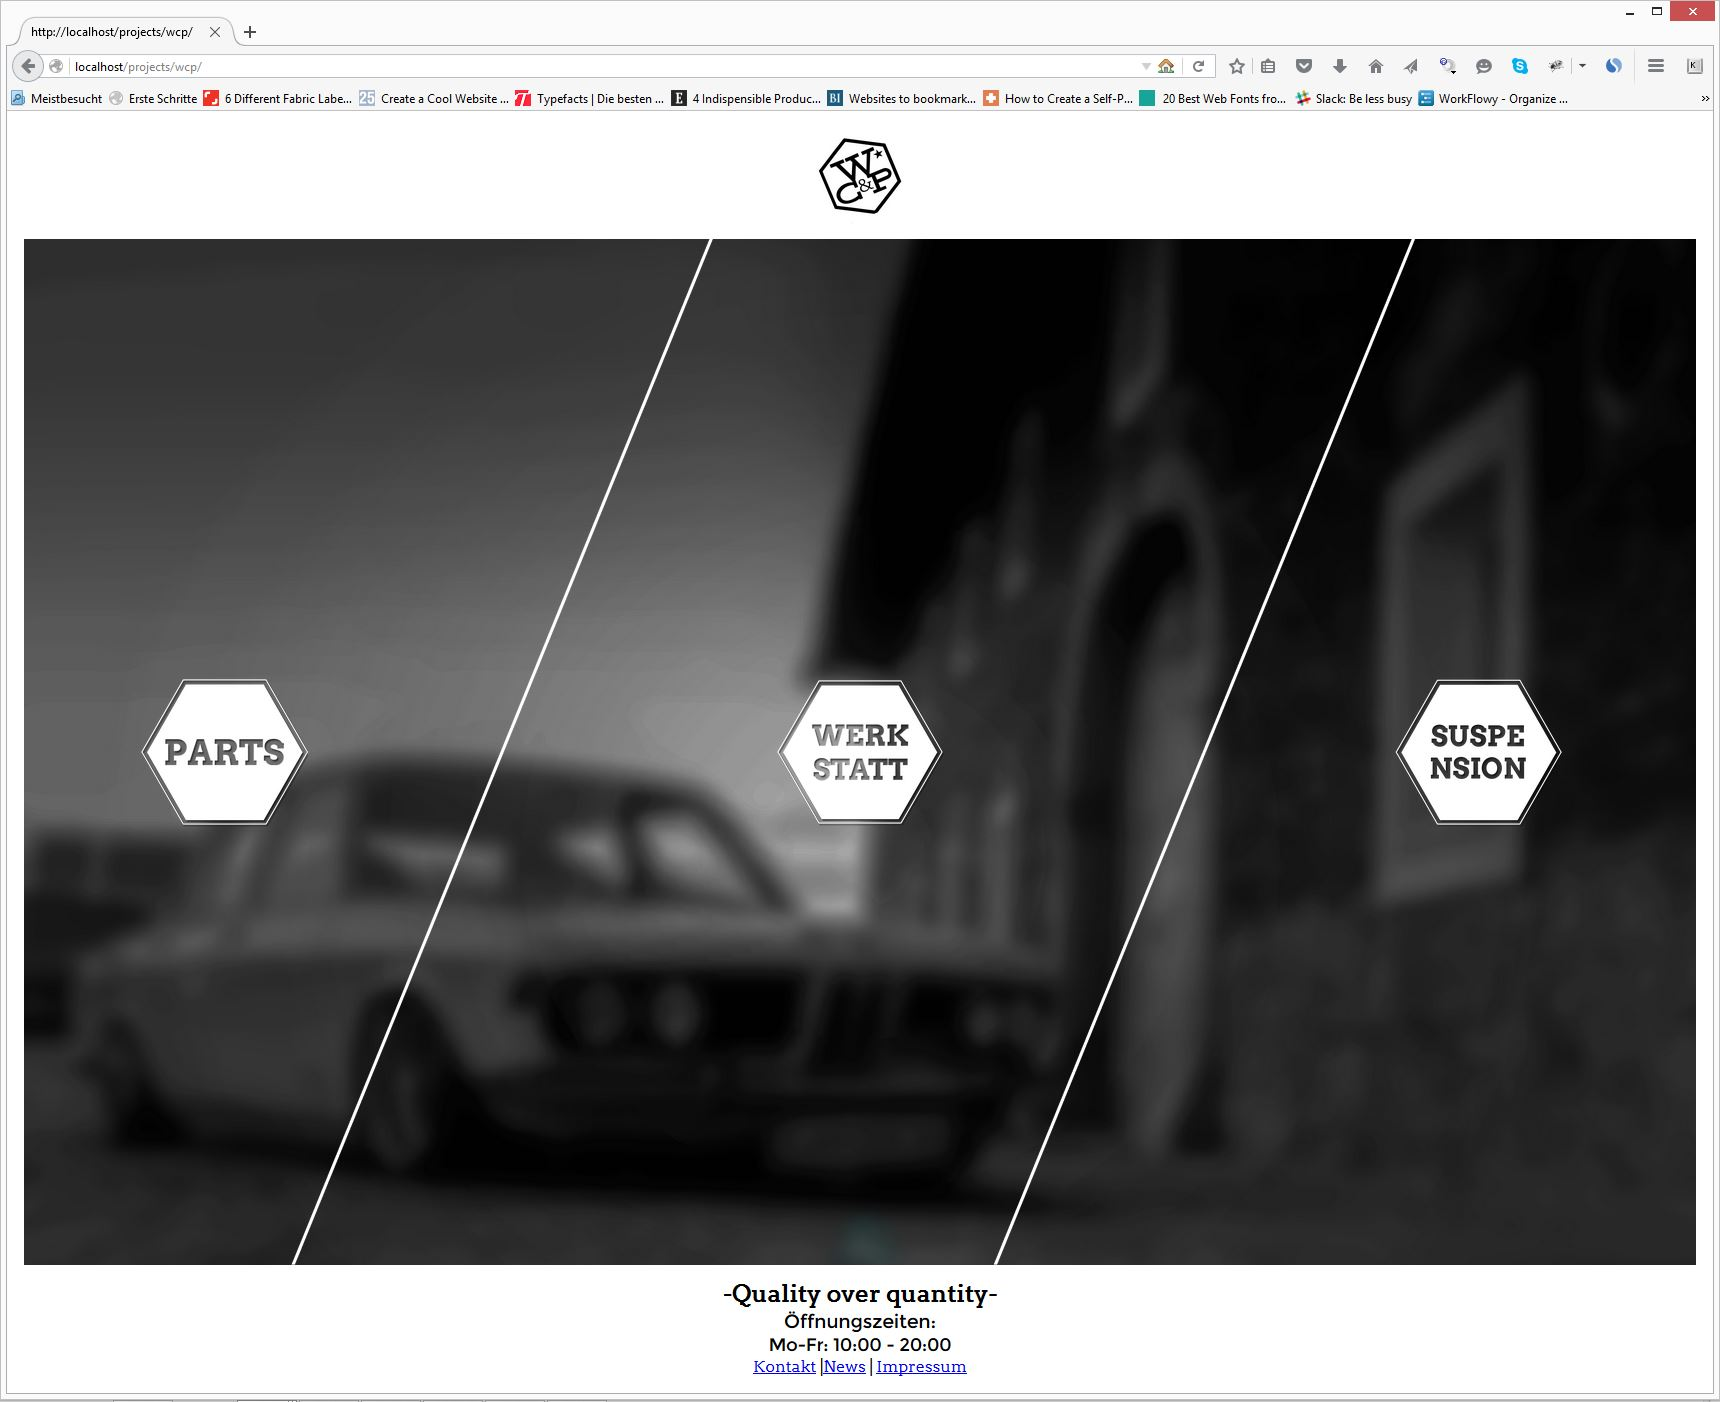 picture download Css works in firefox. Clip path.